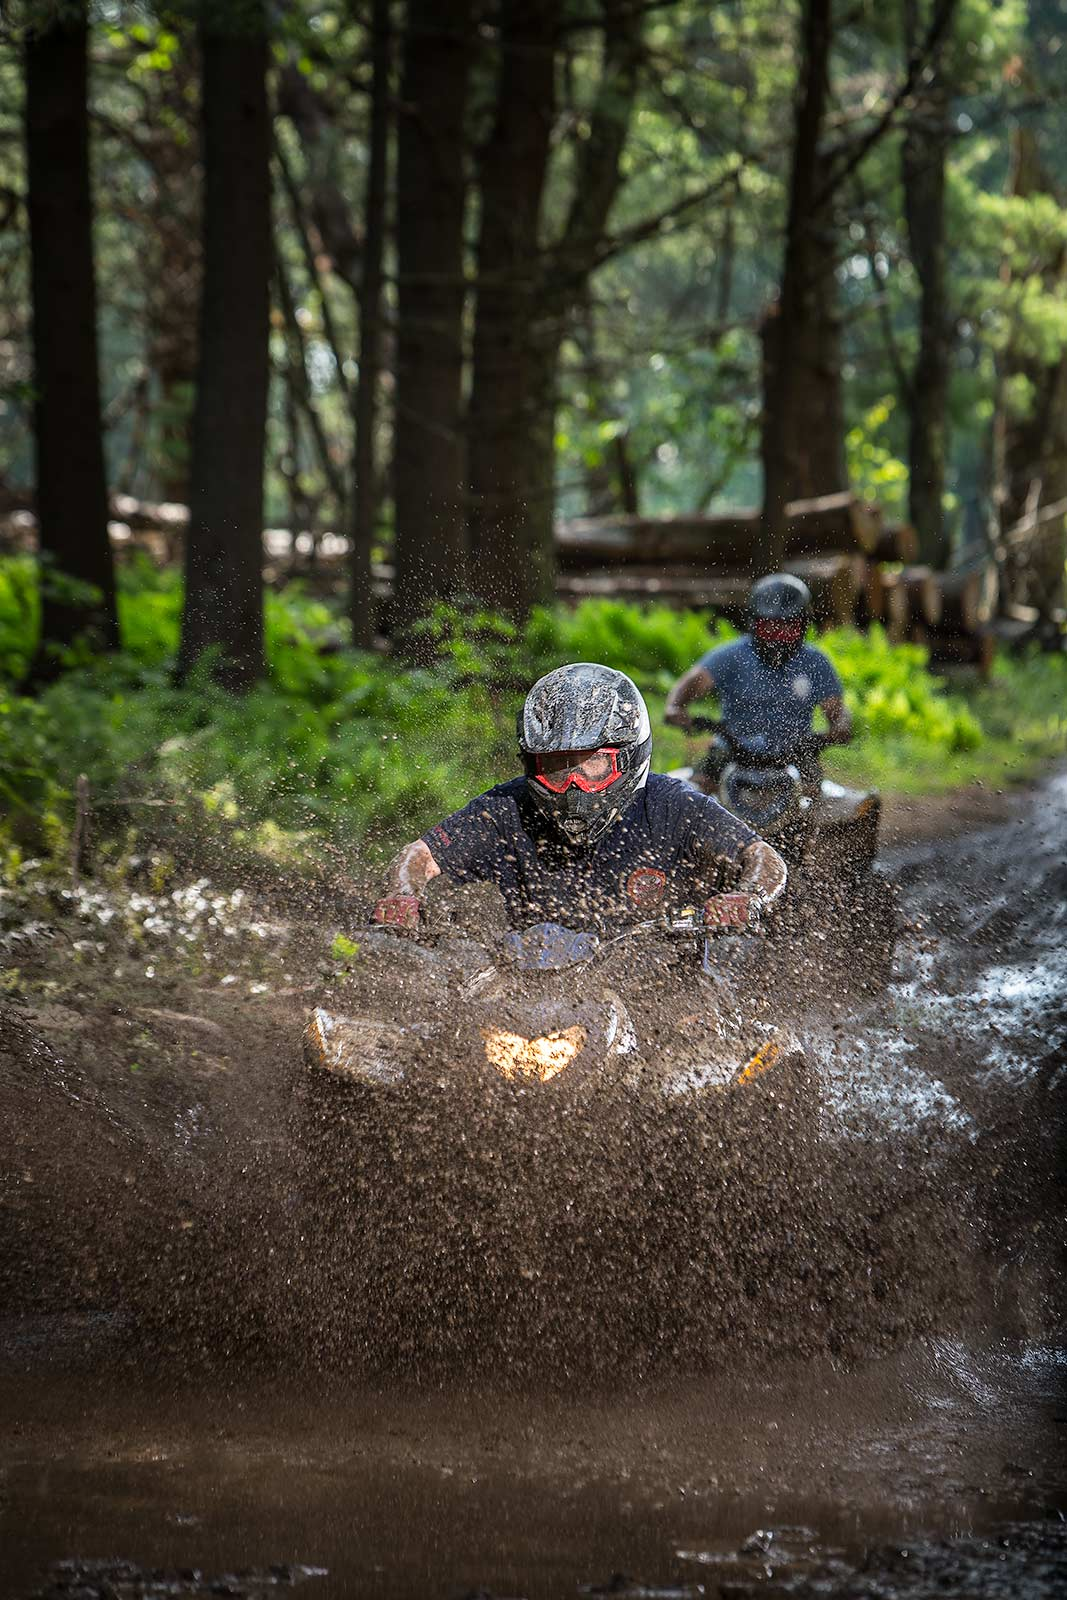 Teenage boyscouts riding ATV